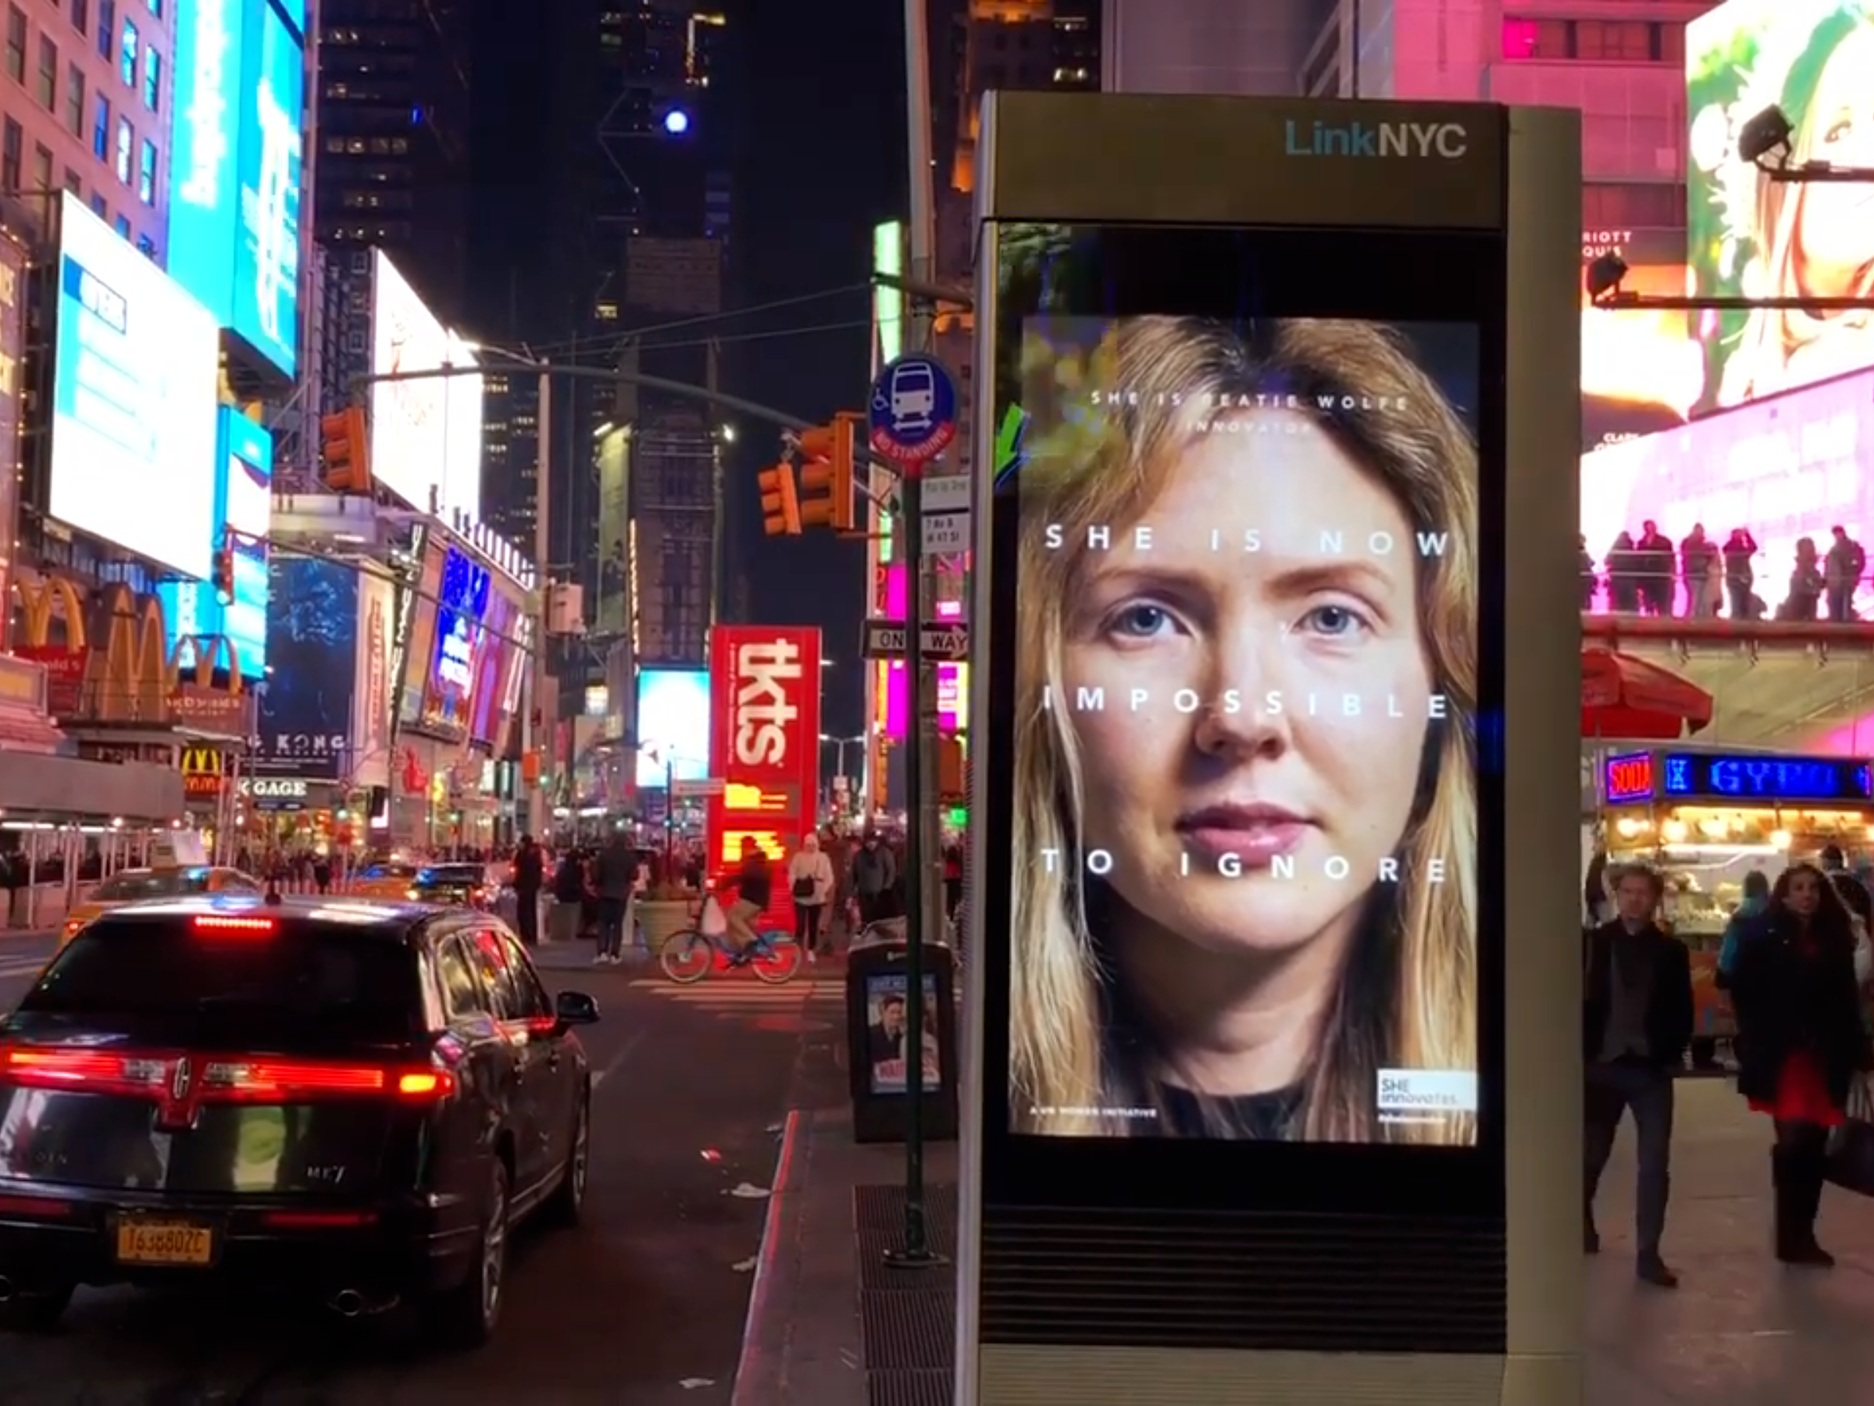 NYC Beatie Wolfe in Time Square Impossible to Ignore.png